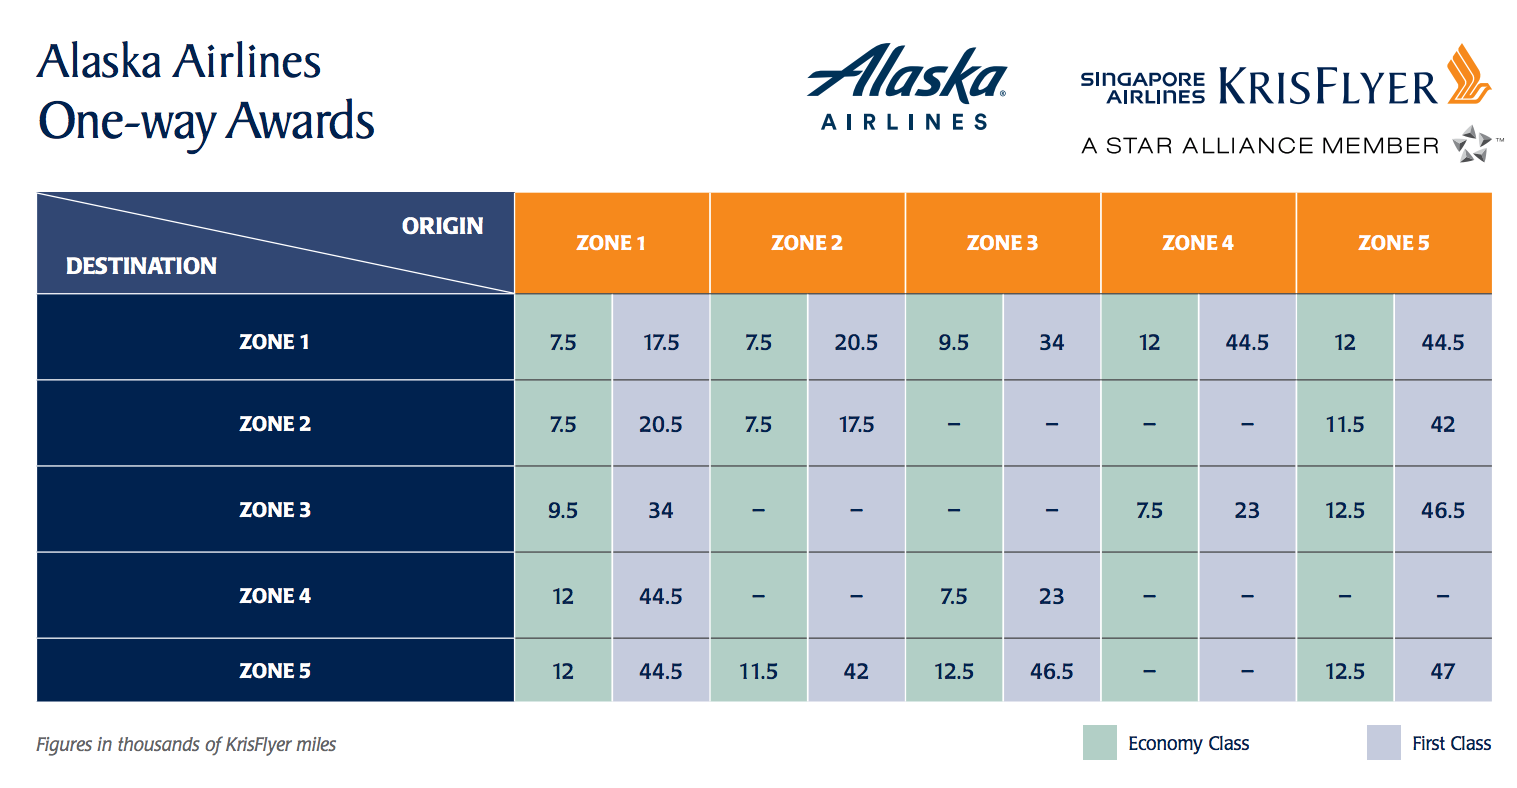 Singapore Air KrisFlyer Award Chart for Alaska Airlines